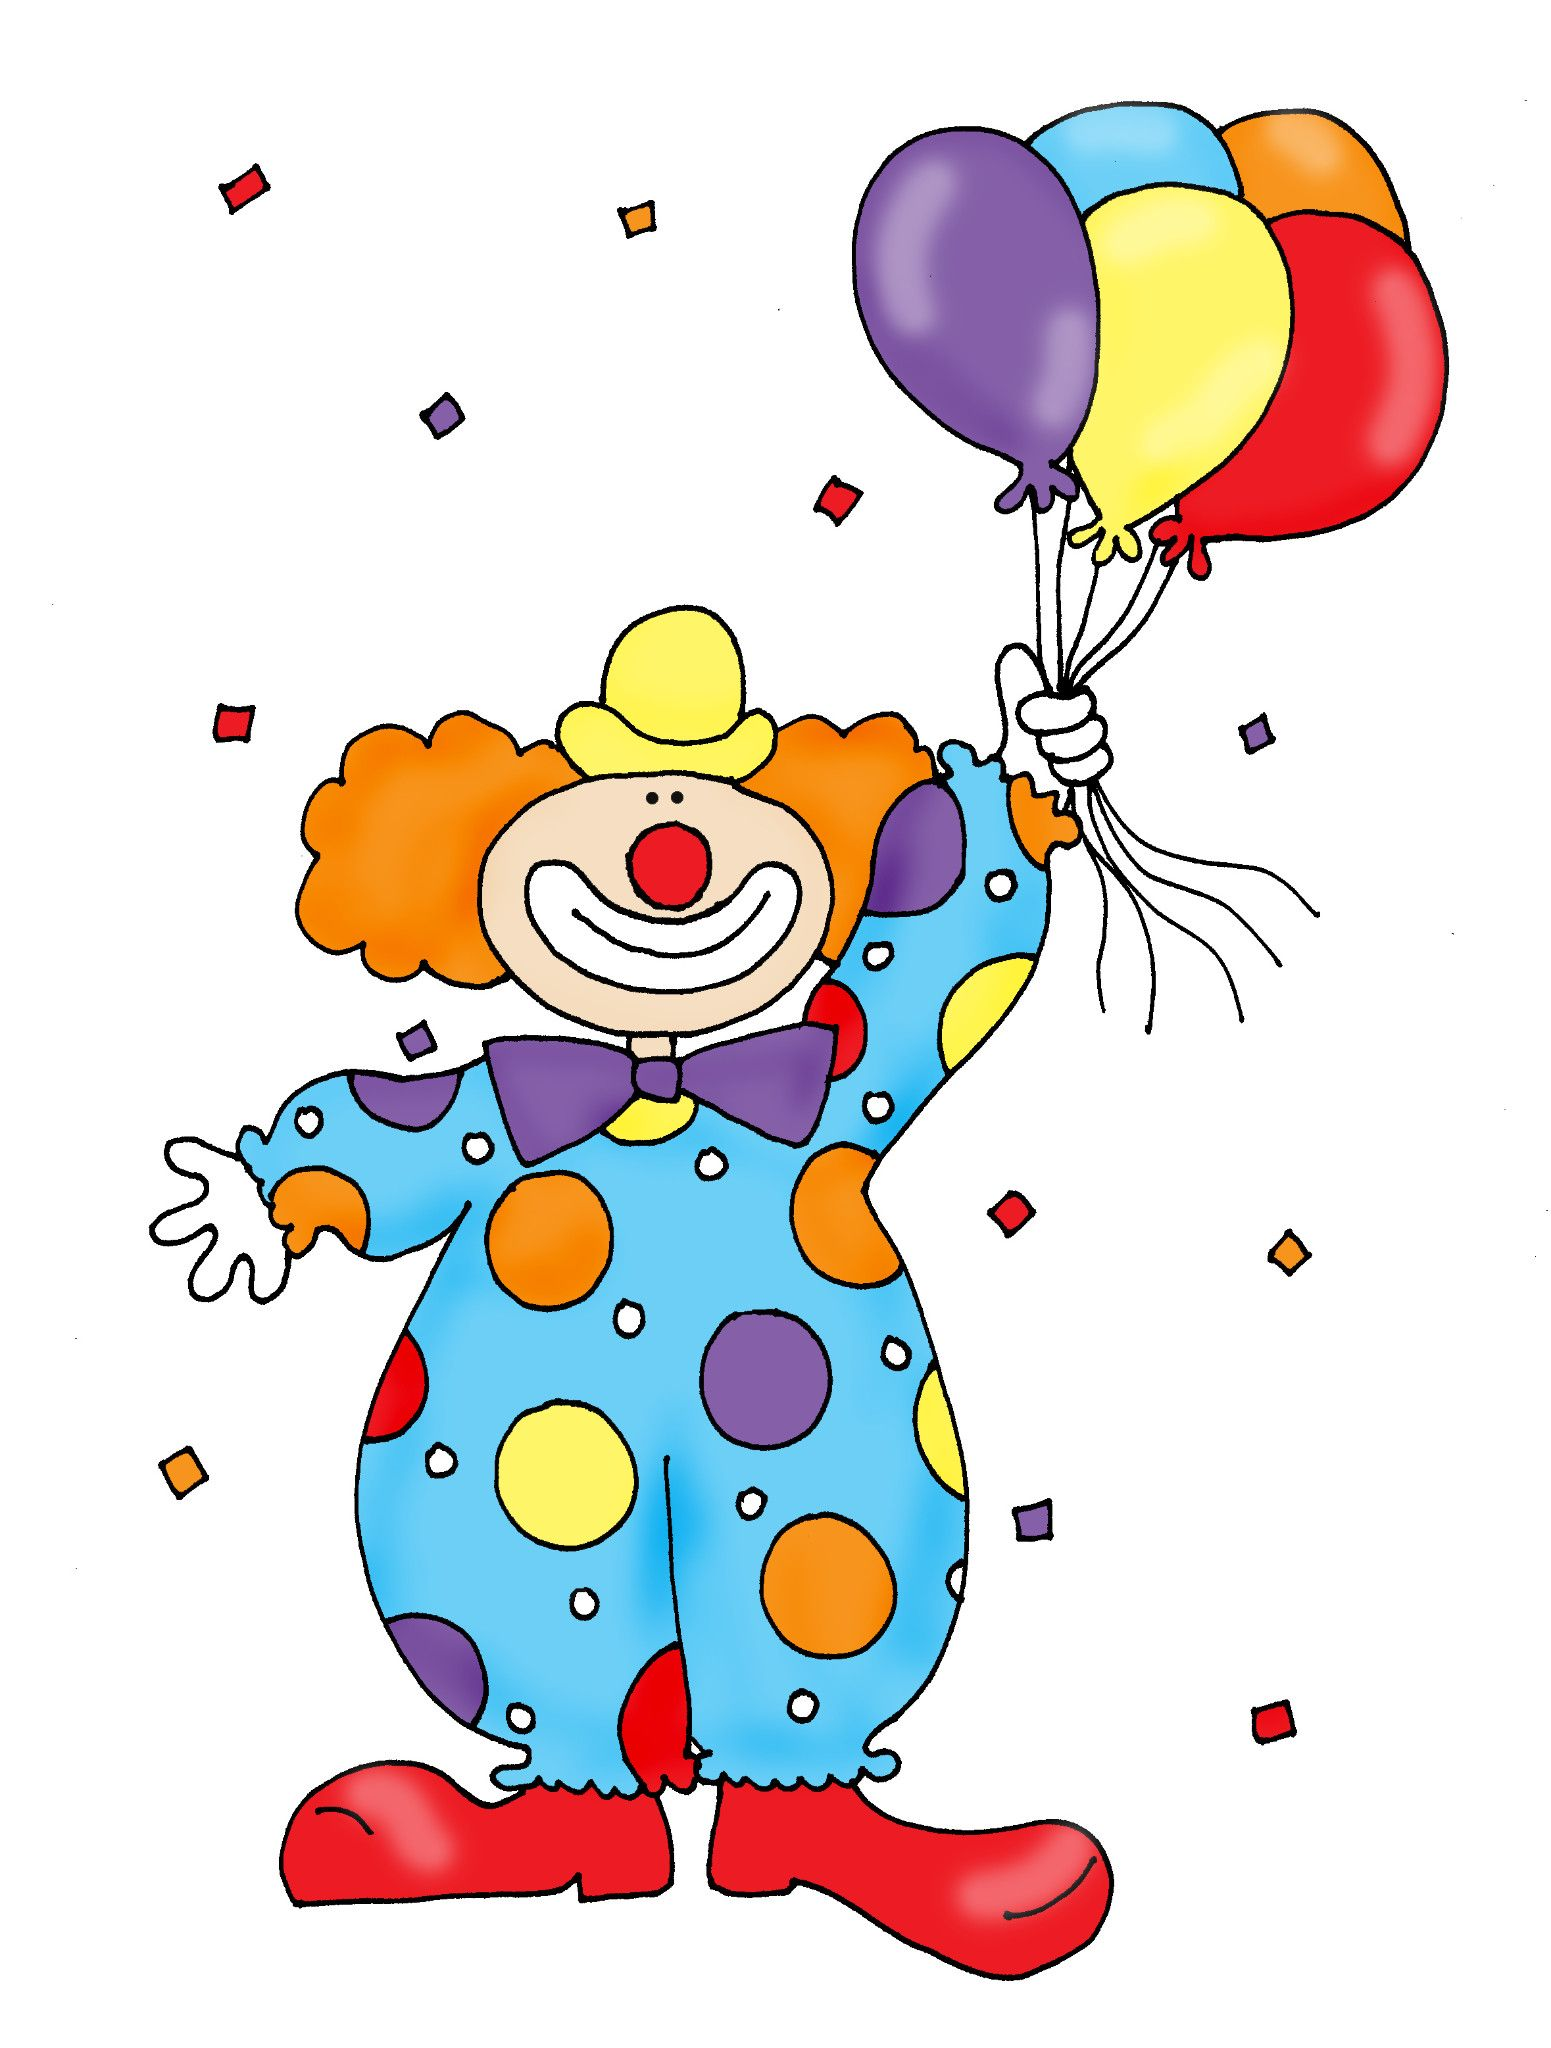 Check our carnival clip art on our site. Description from pinterest.